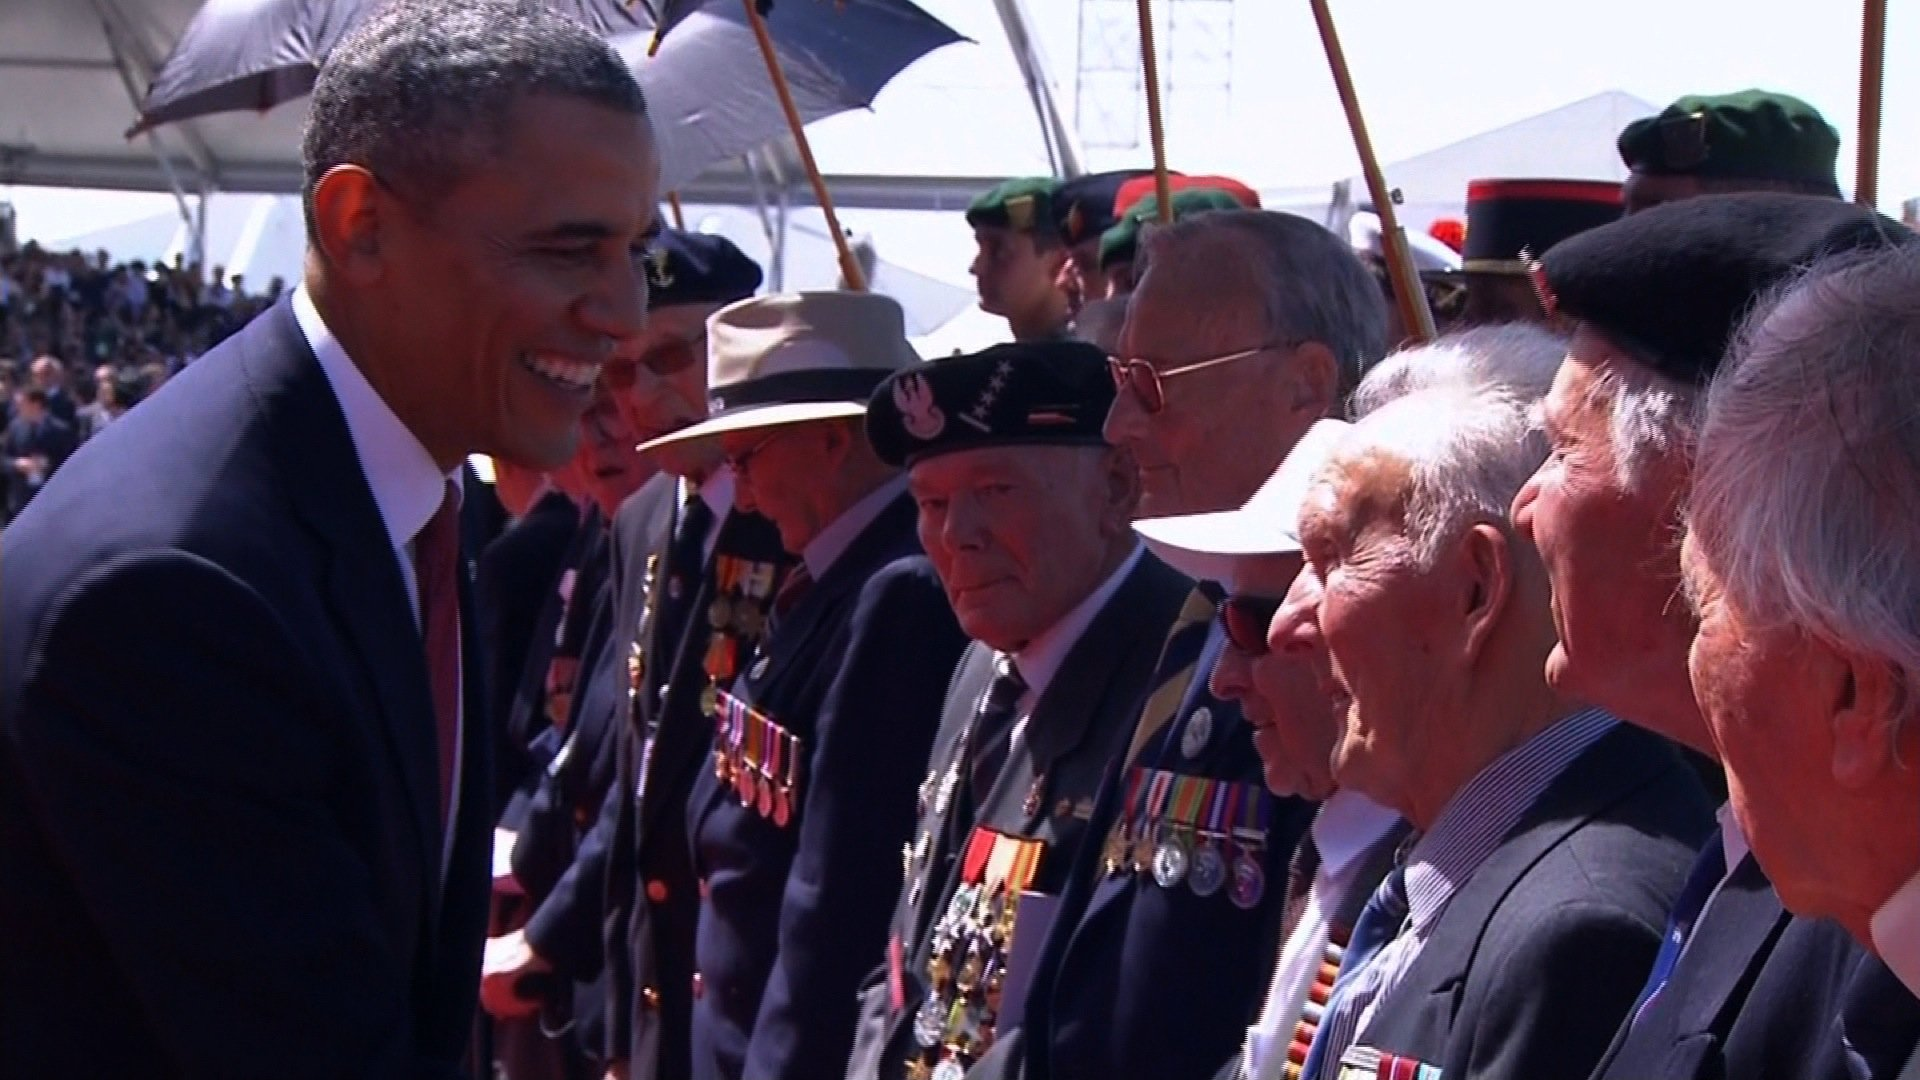 World leaders, veterans and spectators gather to commemorate the 70th Anniversary of D-Day